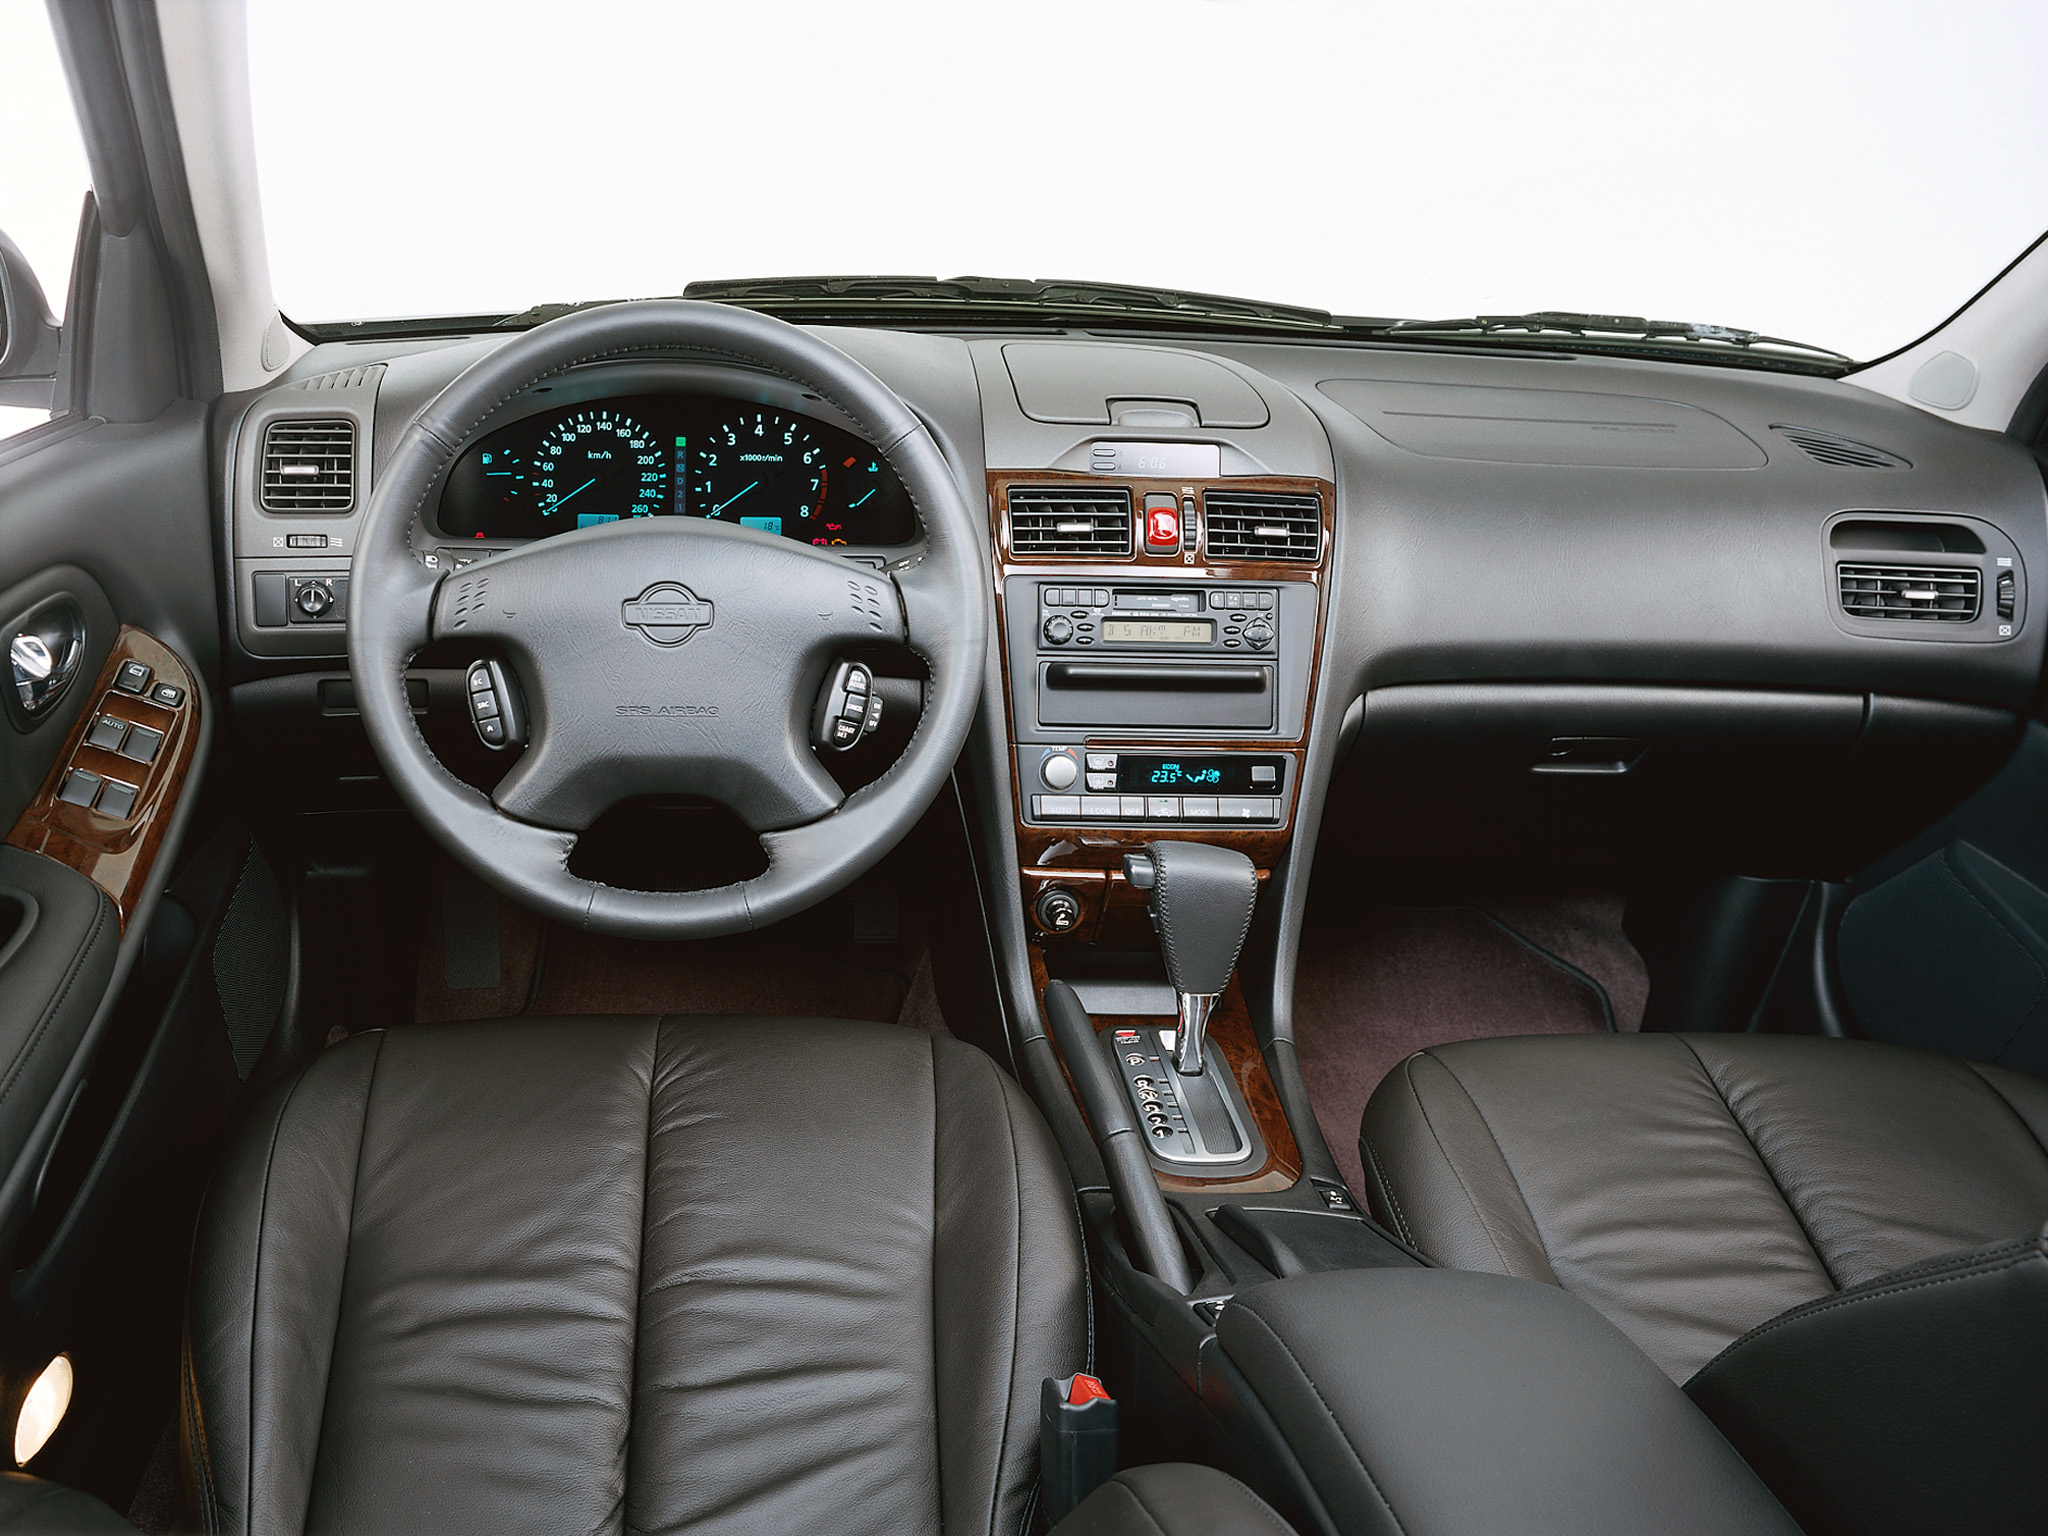 Nissan Maxima Radio Kit